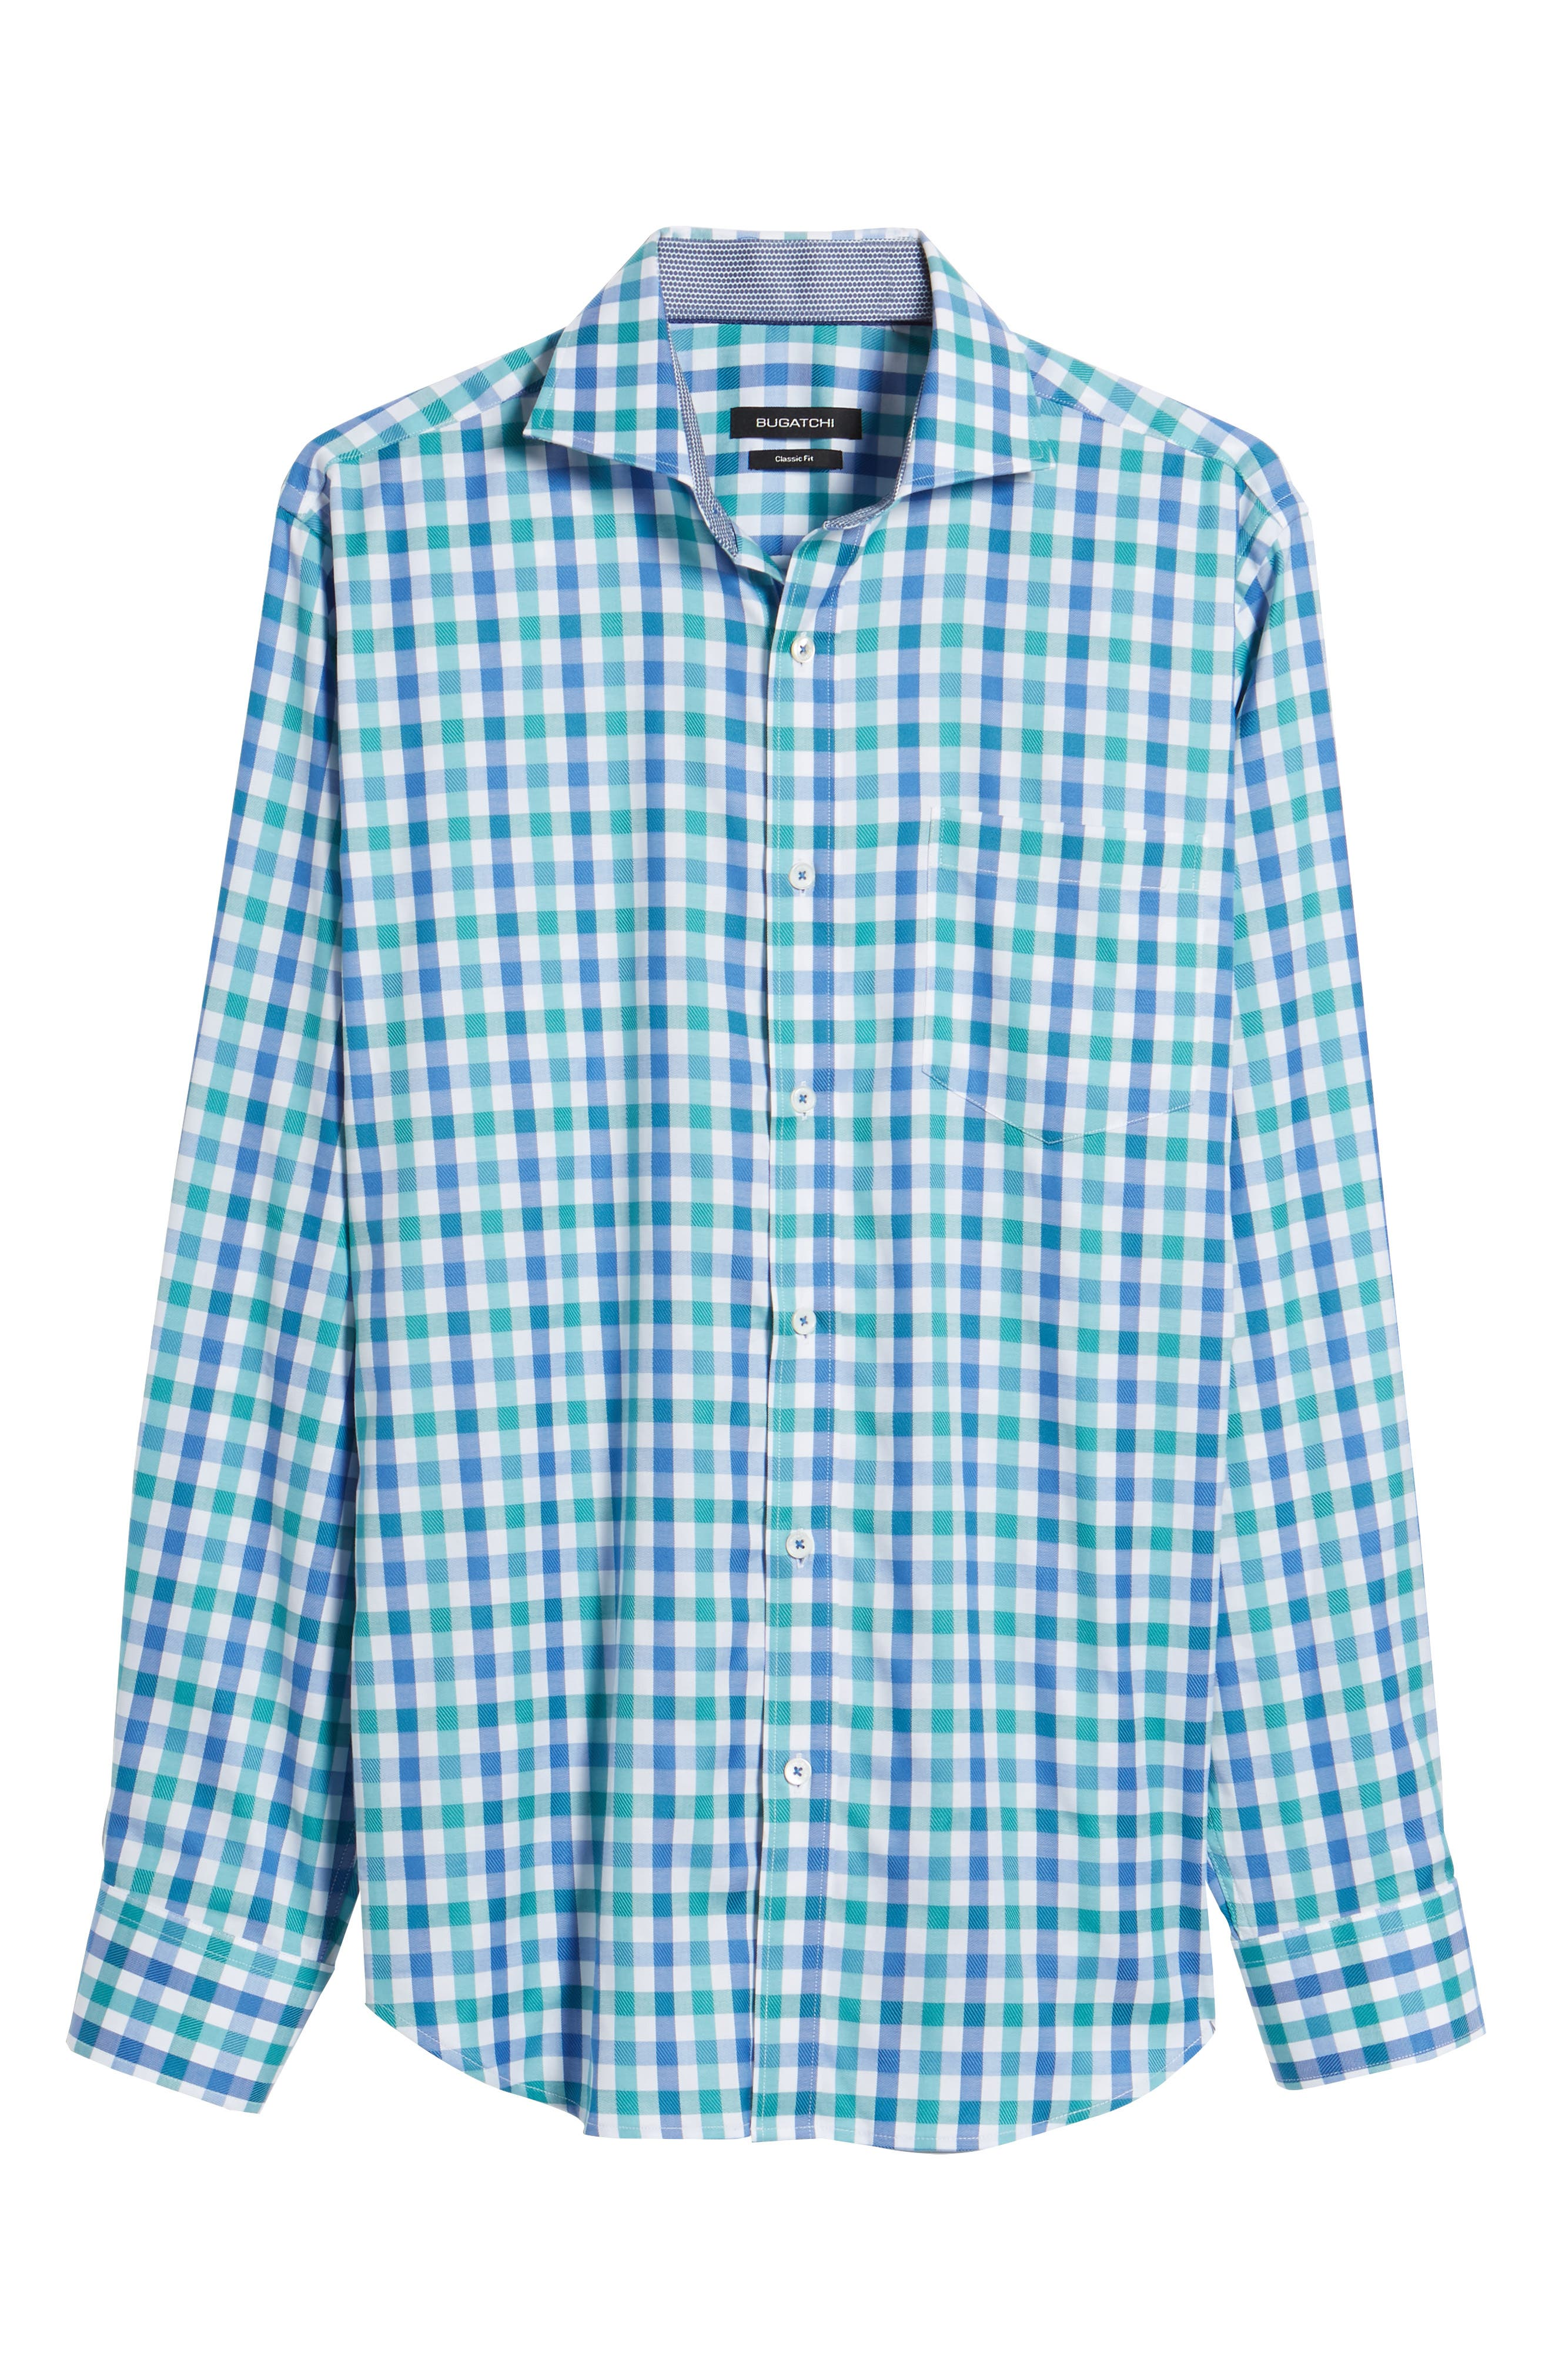 Classic Fit Gingham Check Sport Shirt,                             Alternate thumbnail 6, color,                             313